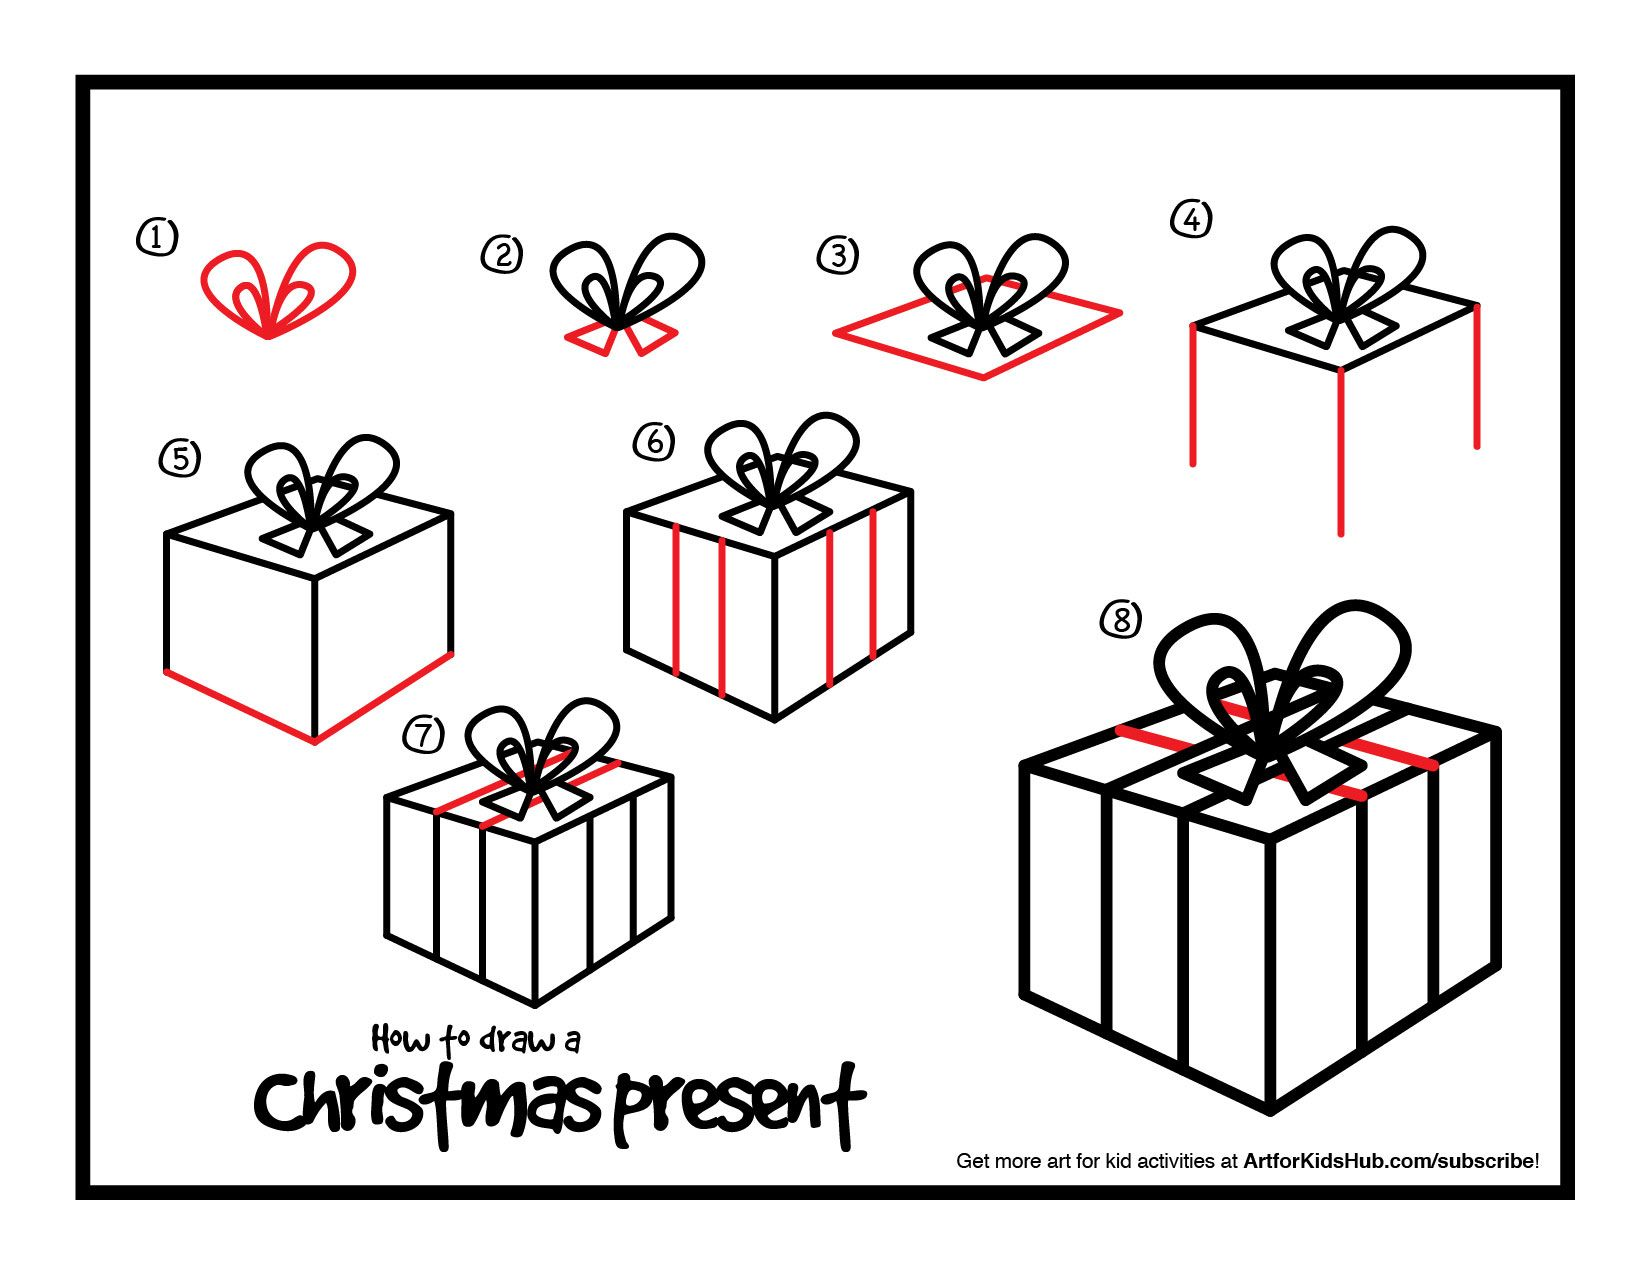 How To Draw A Christmas Present